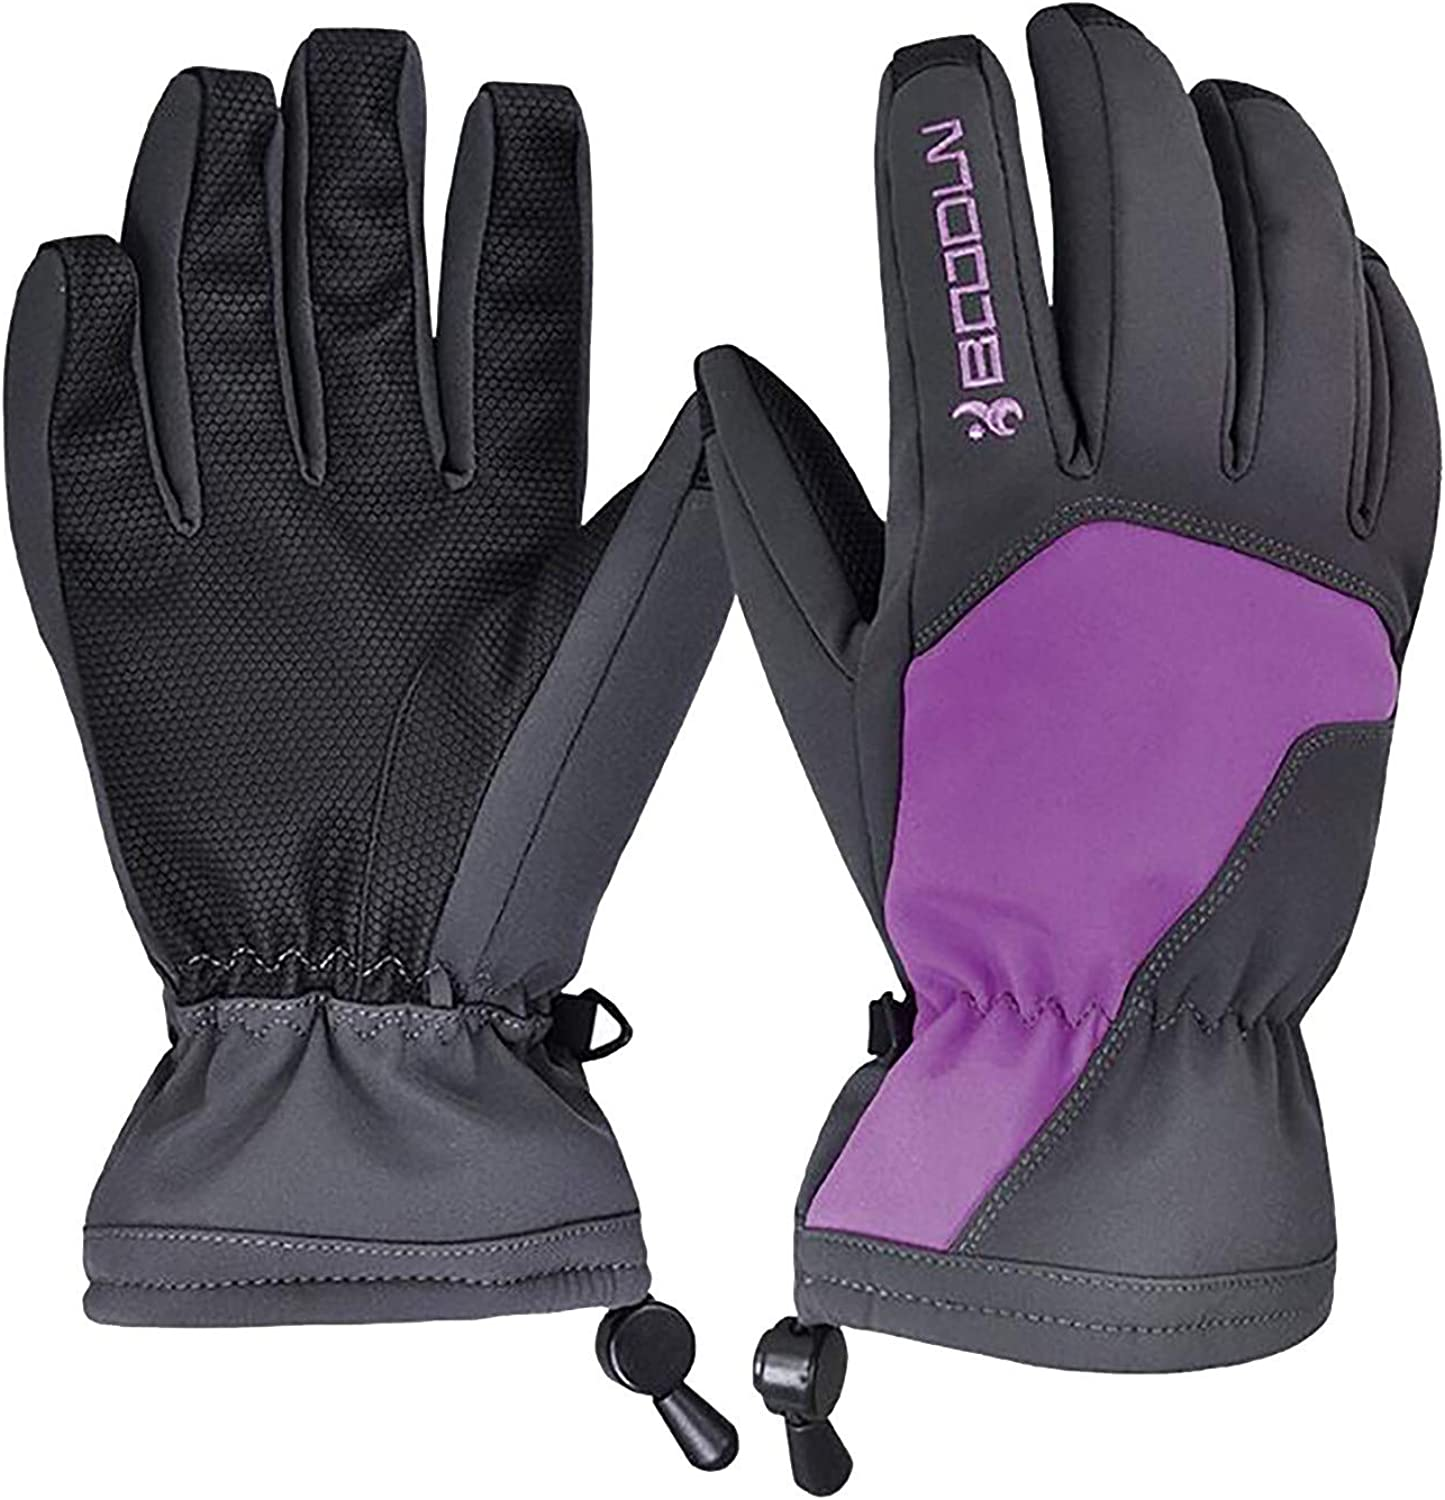 Men Winter Thermal Gloves for Riding Ski Gloves Mountaineering Motorcycle Windproof Waterproof Warm Gloves